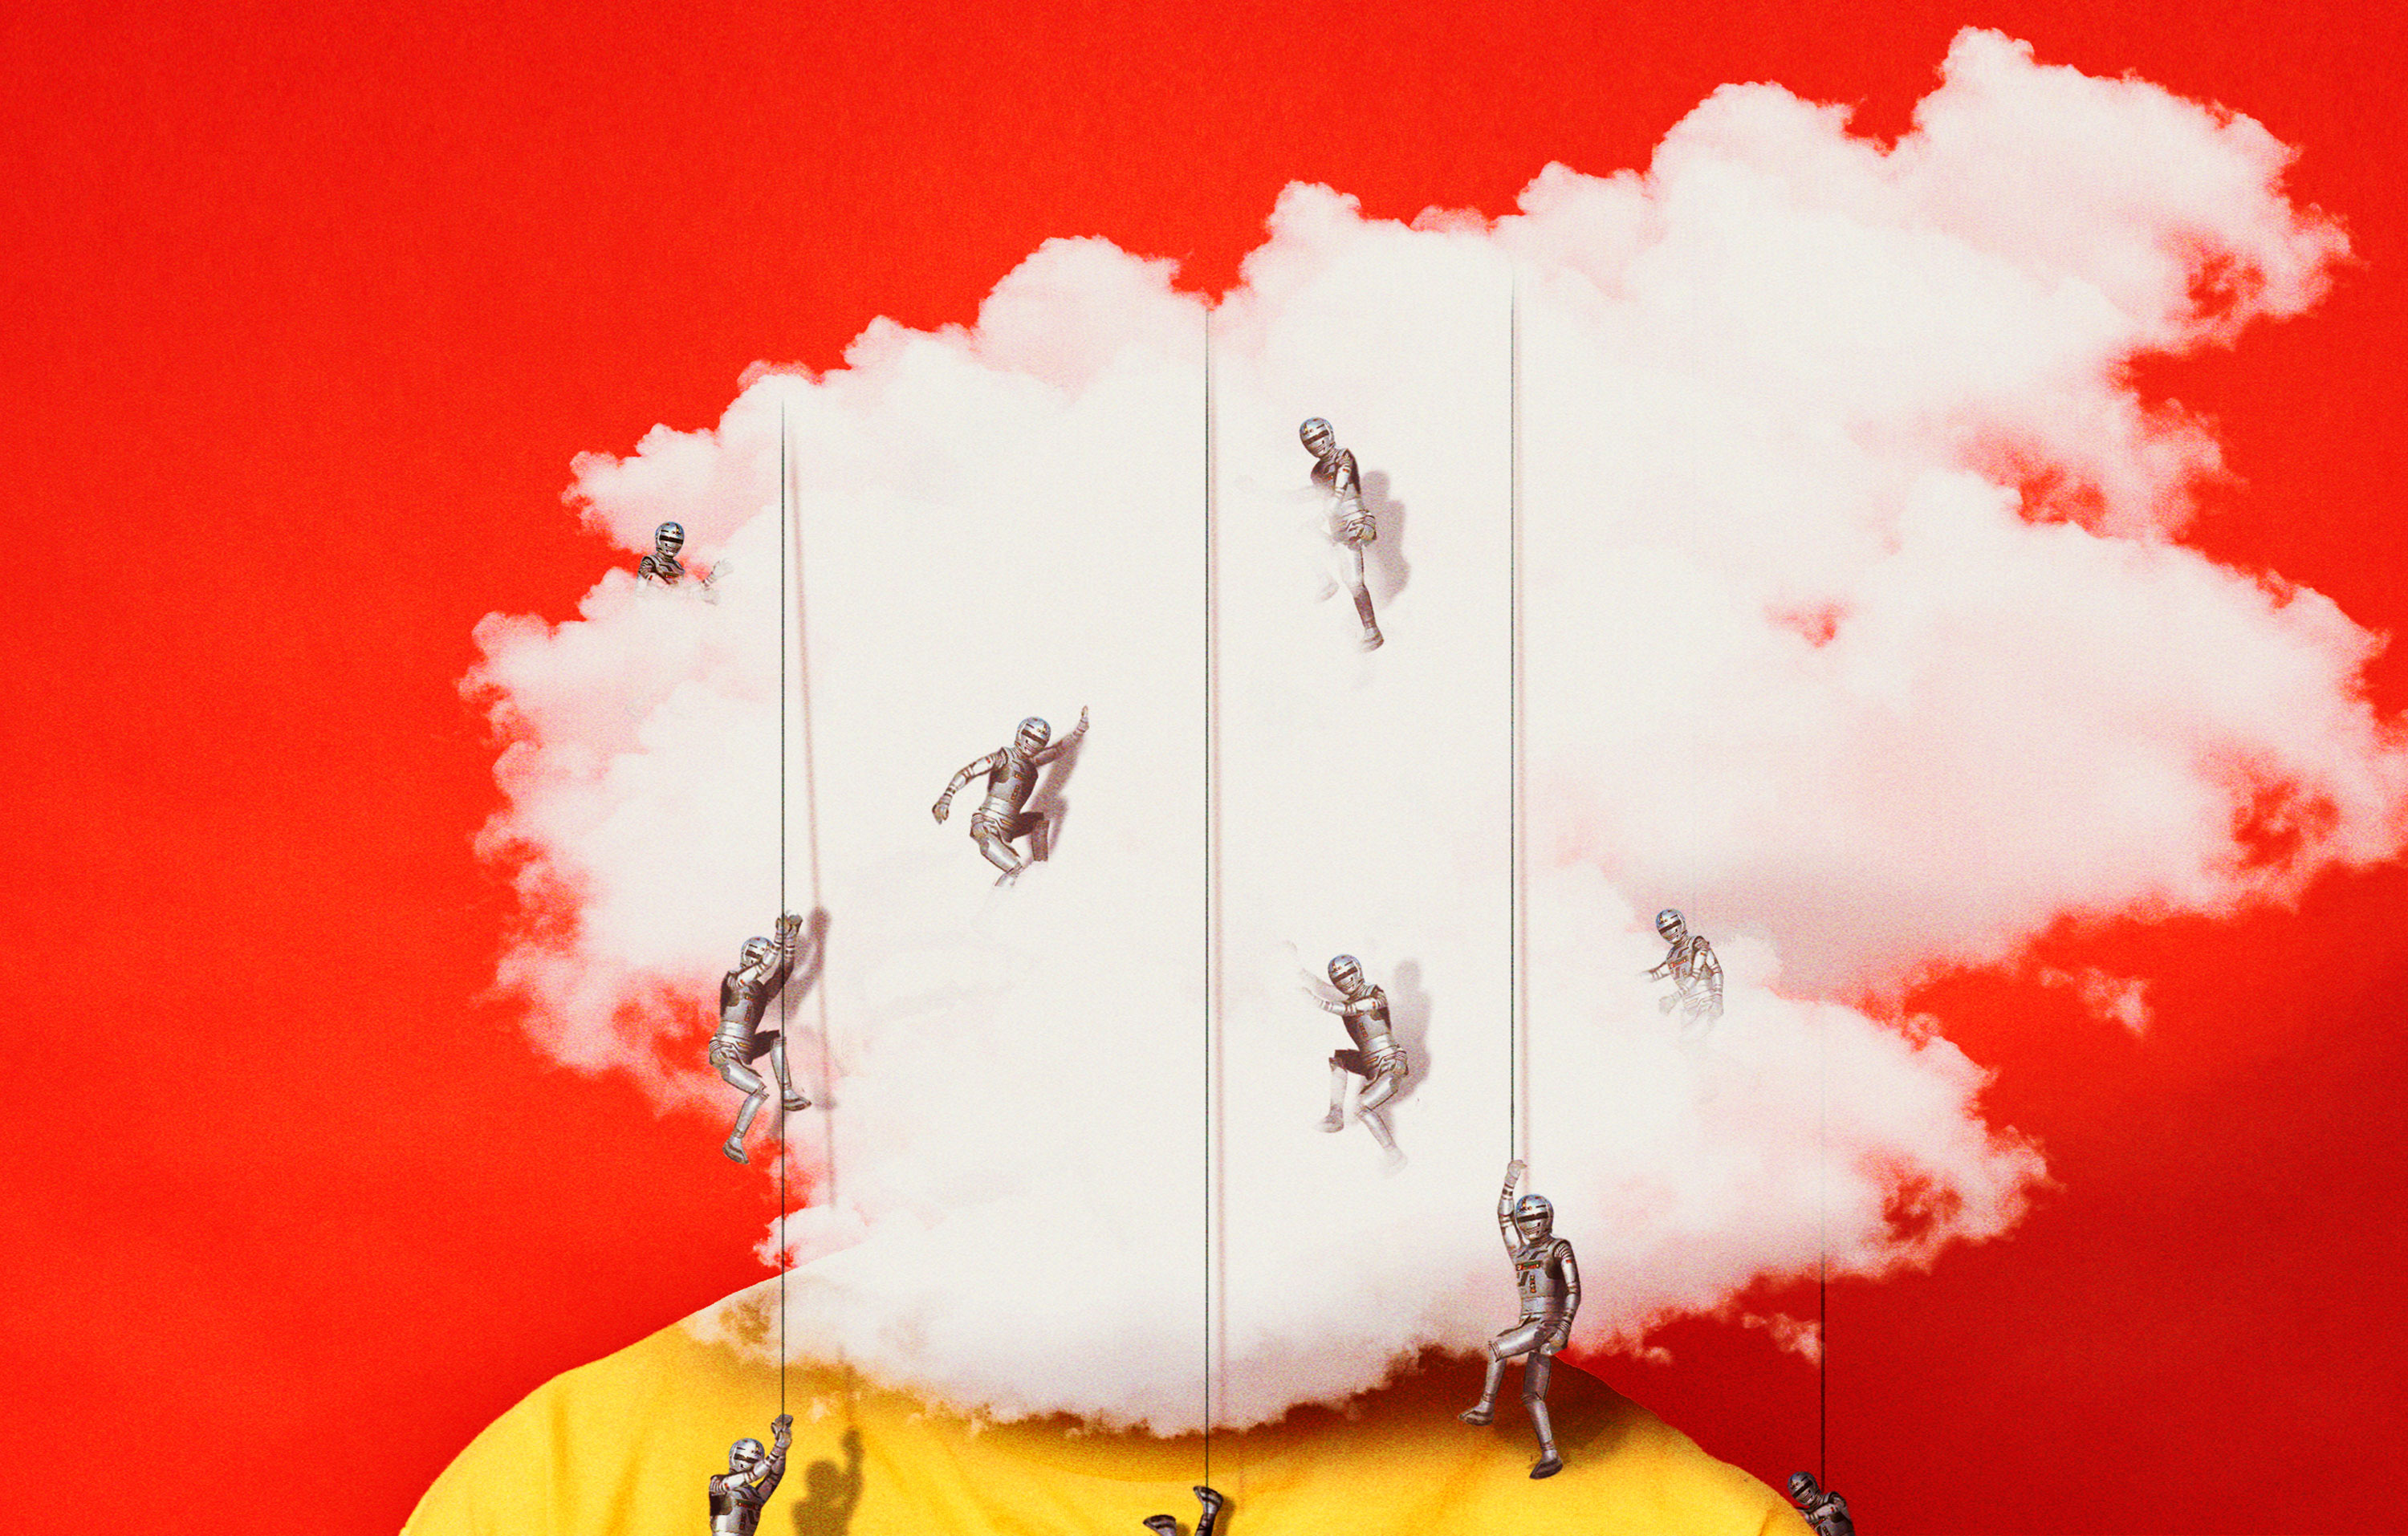 Conceptual illustration showing a person whose face is obscured by a cloud with small soldiers rappelling over it.